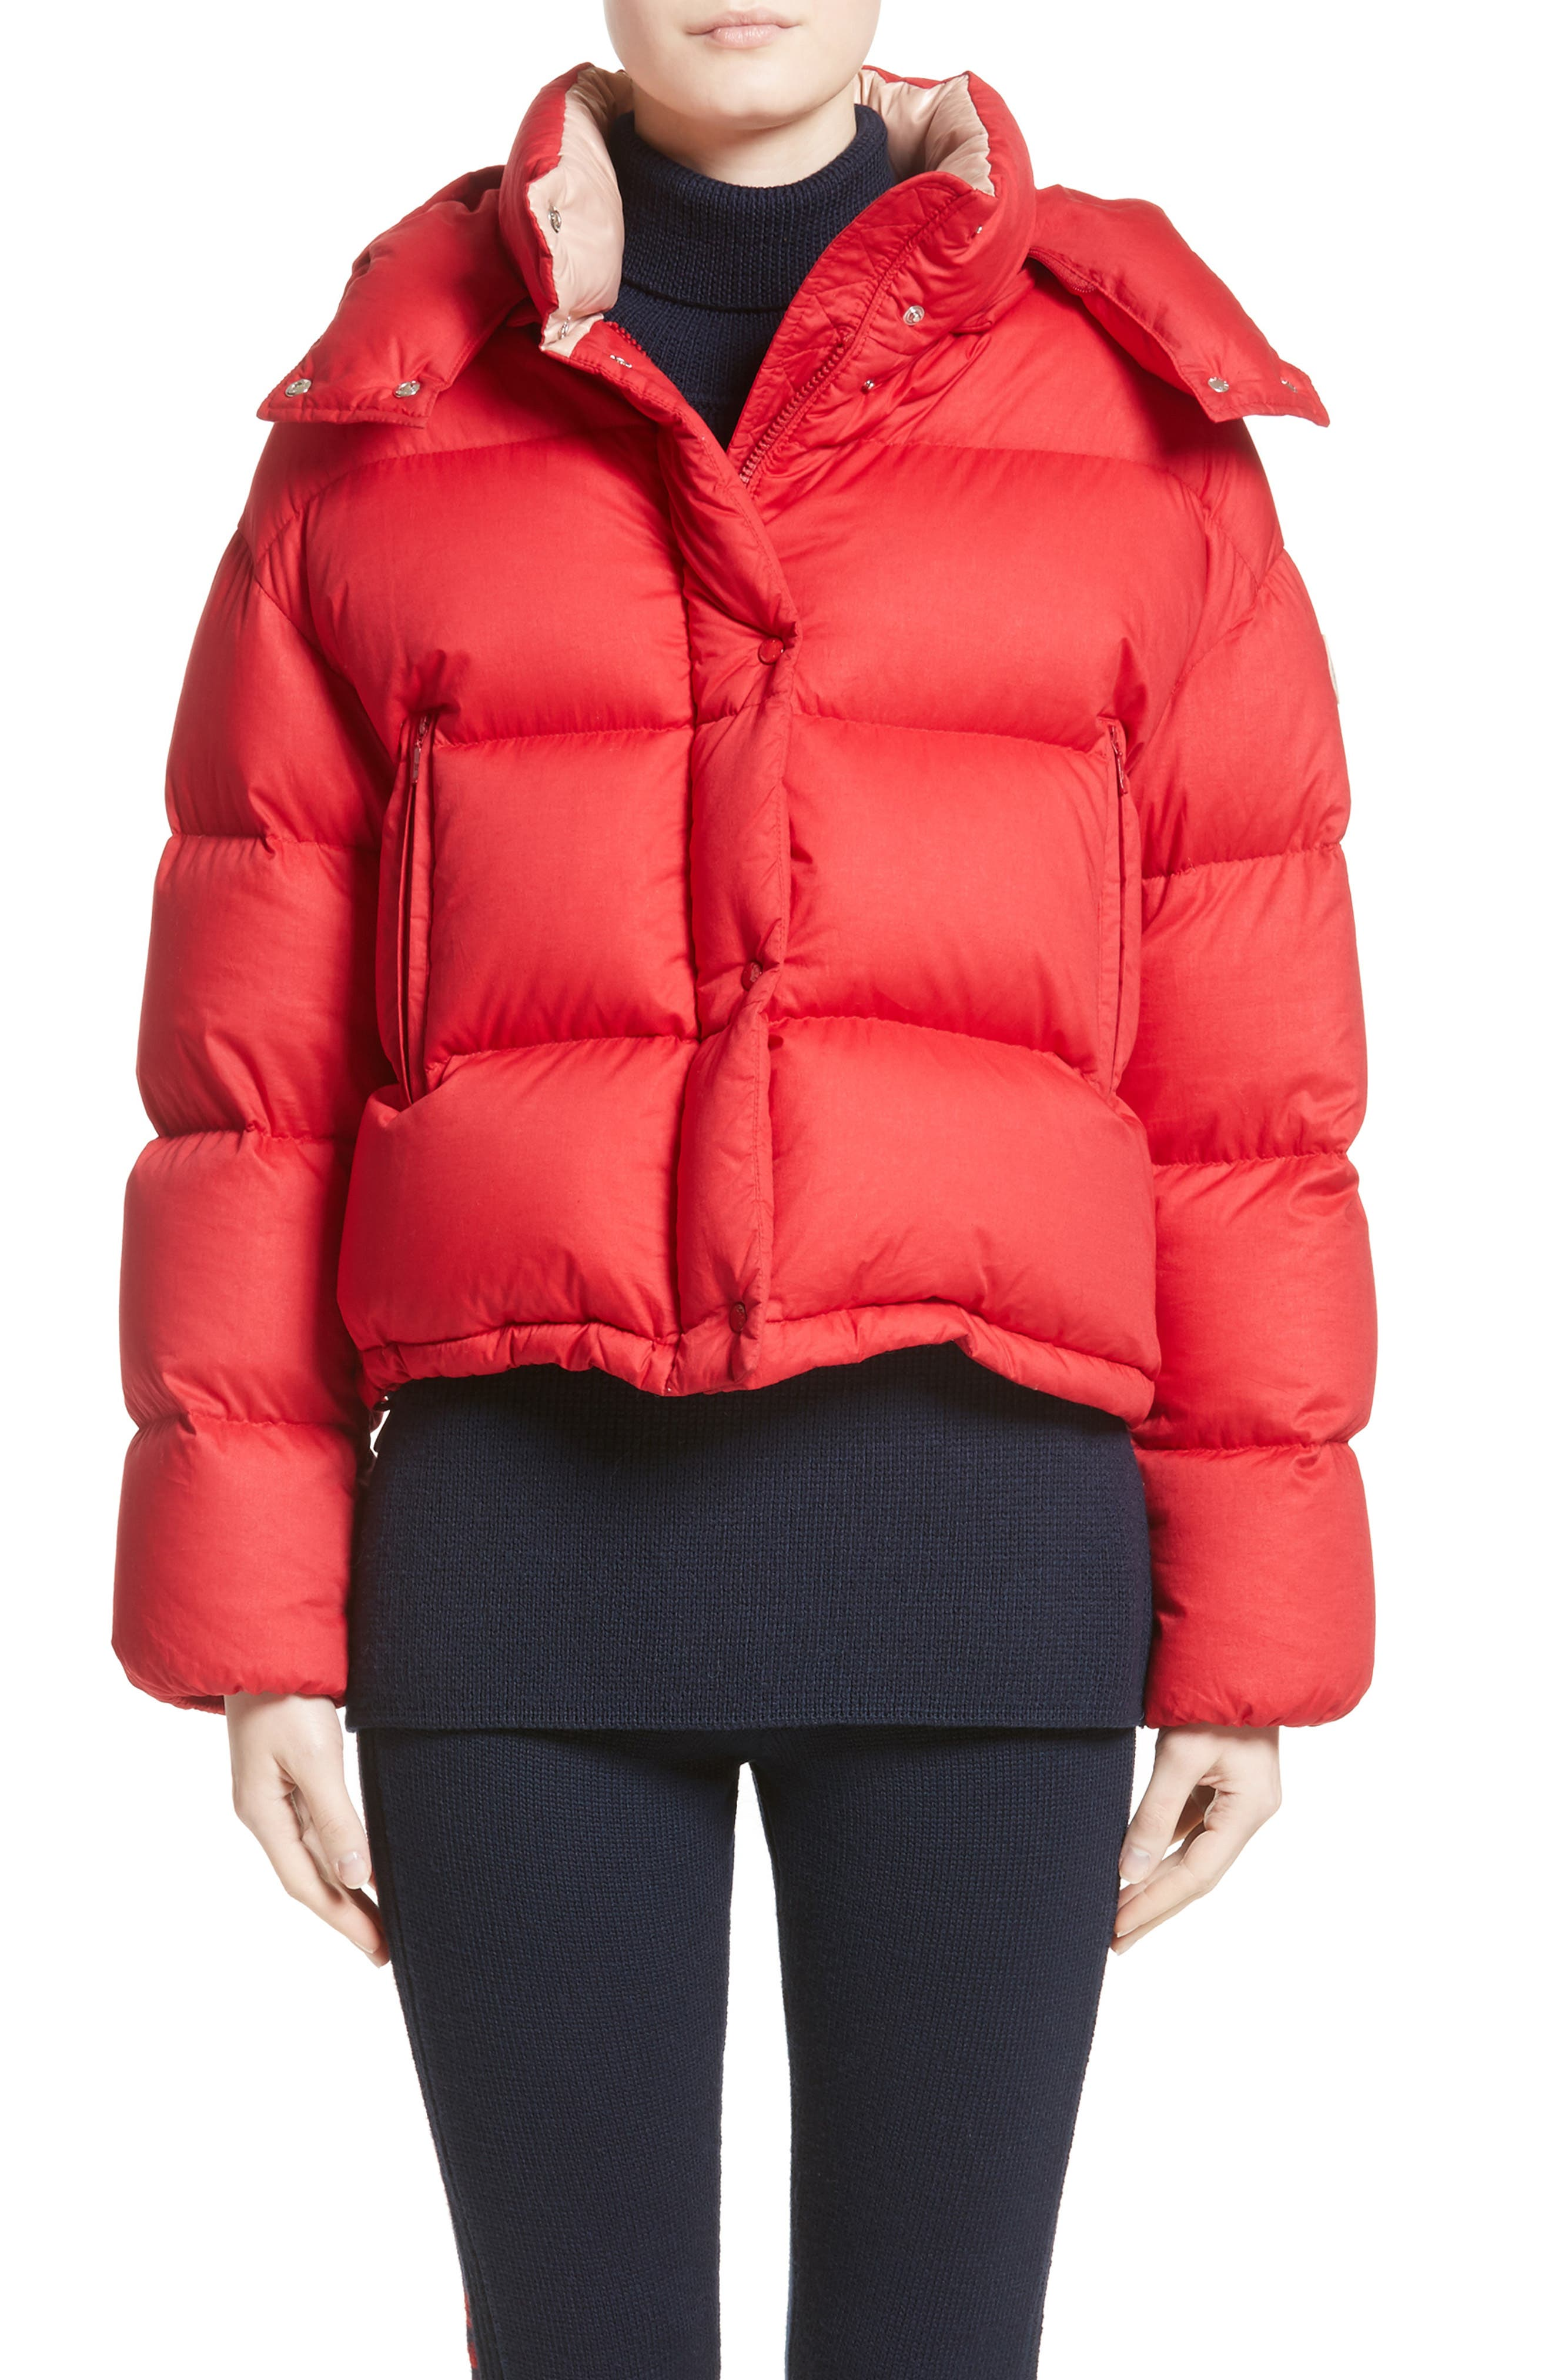 Paeonia Quilted Puffer Jacket,                         Main,                         color, Red